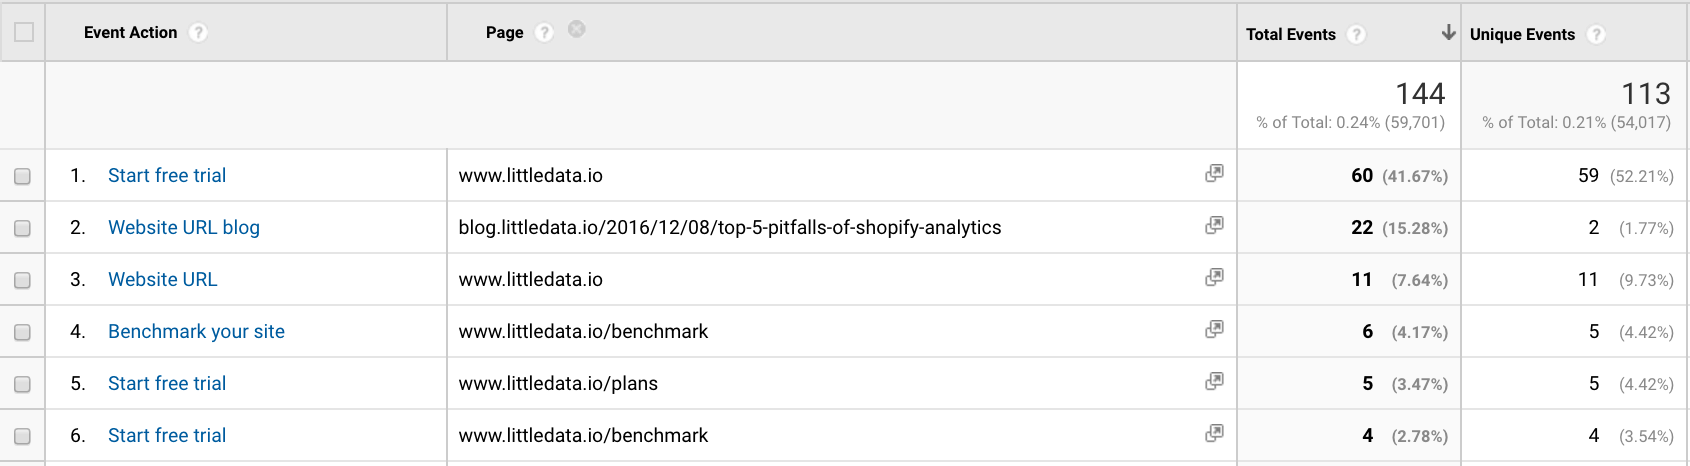 Google Analytics interpretation of events in page